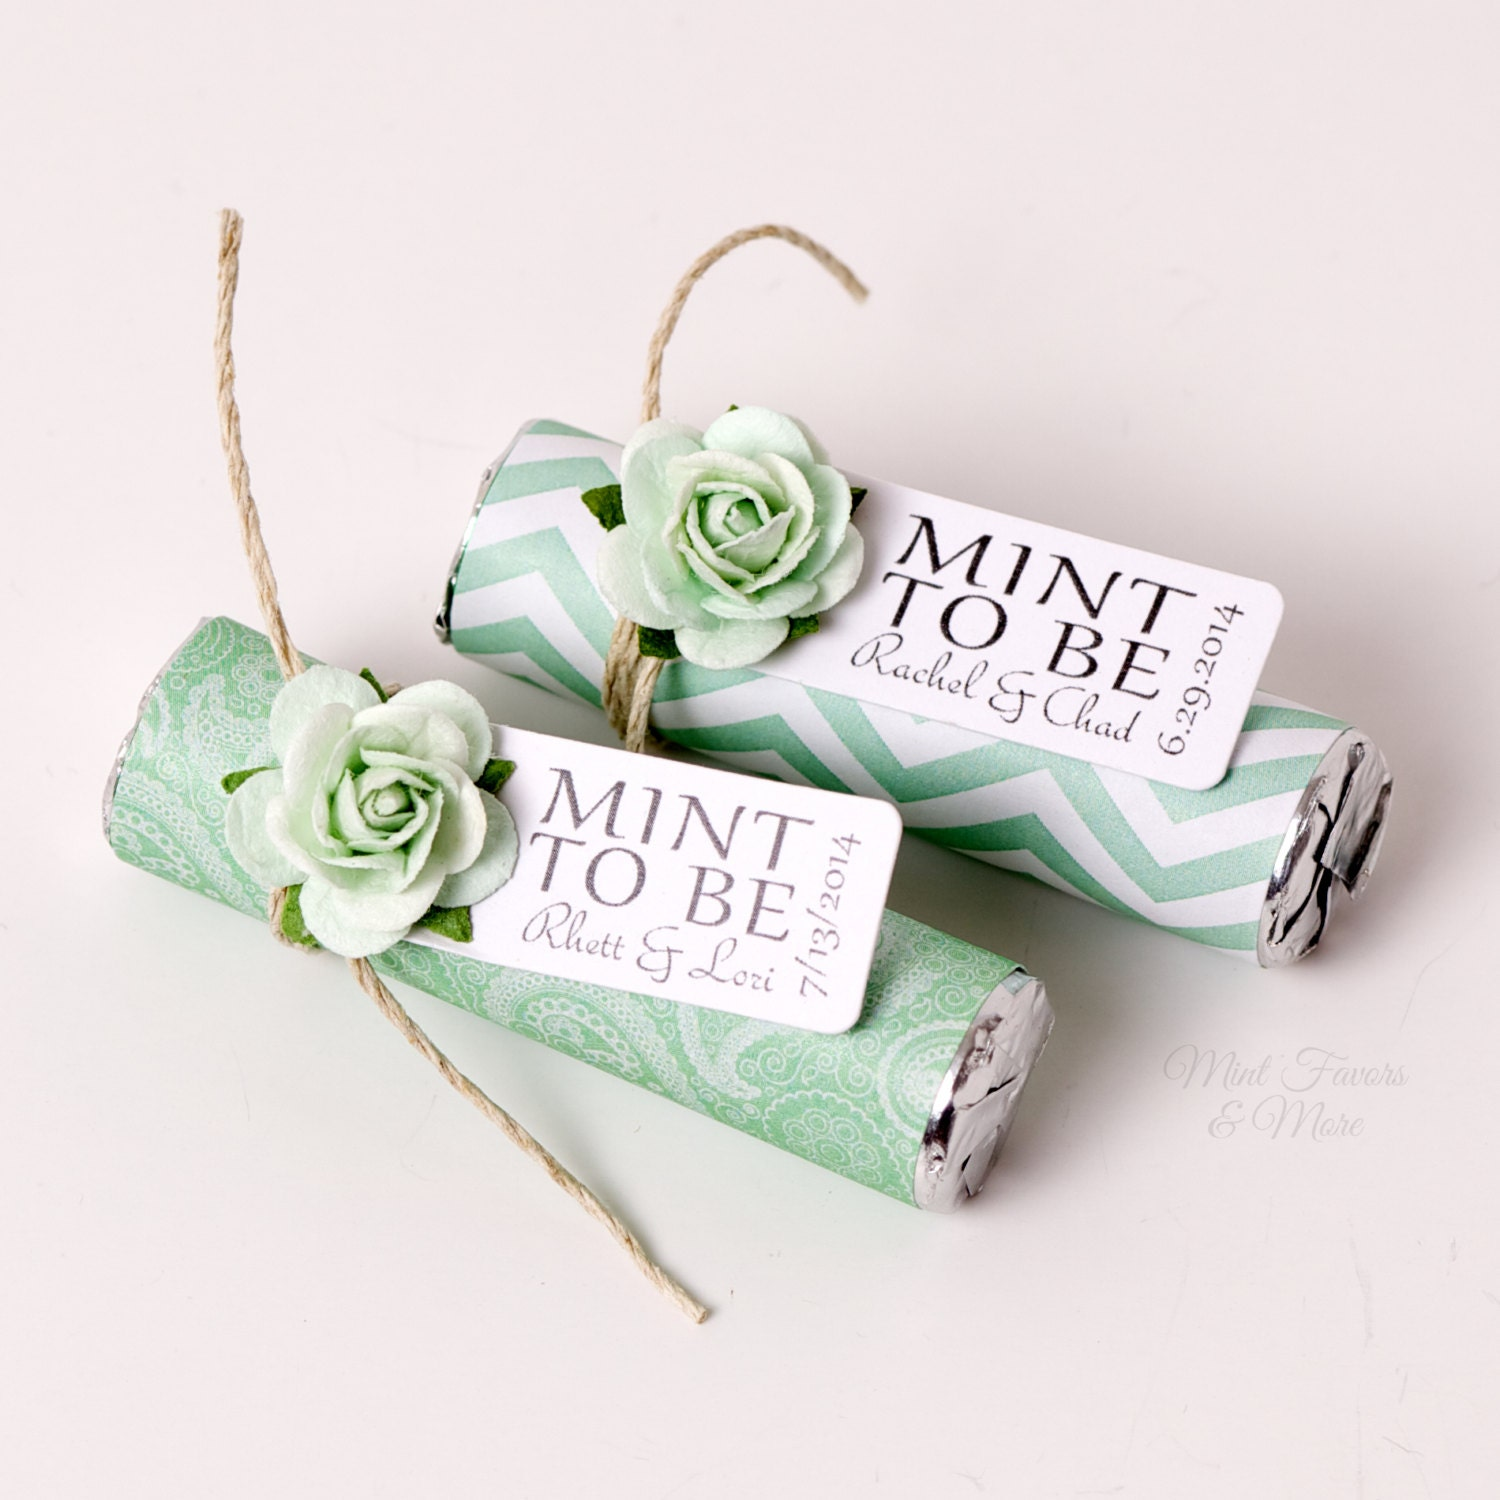 Mint Wedding Favors with Personalized Mint to be